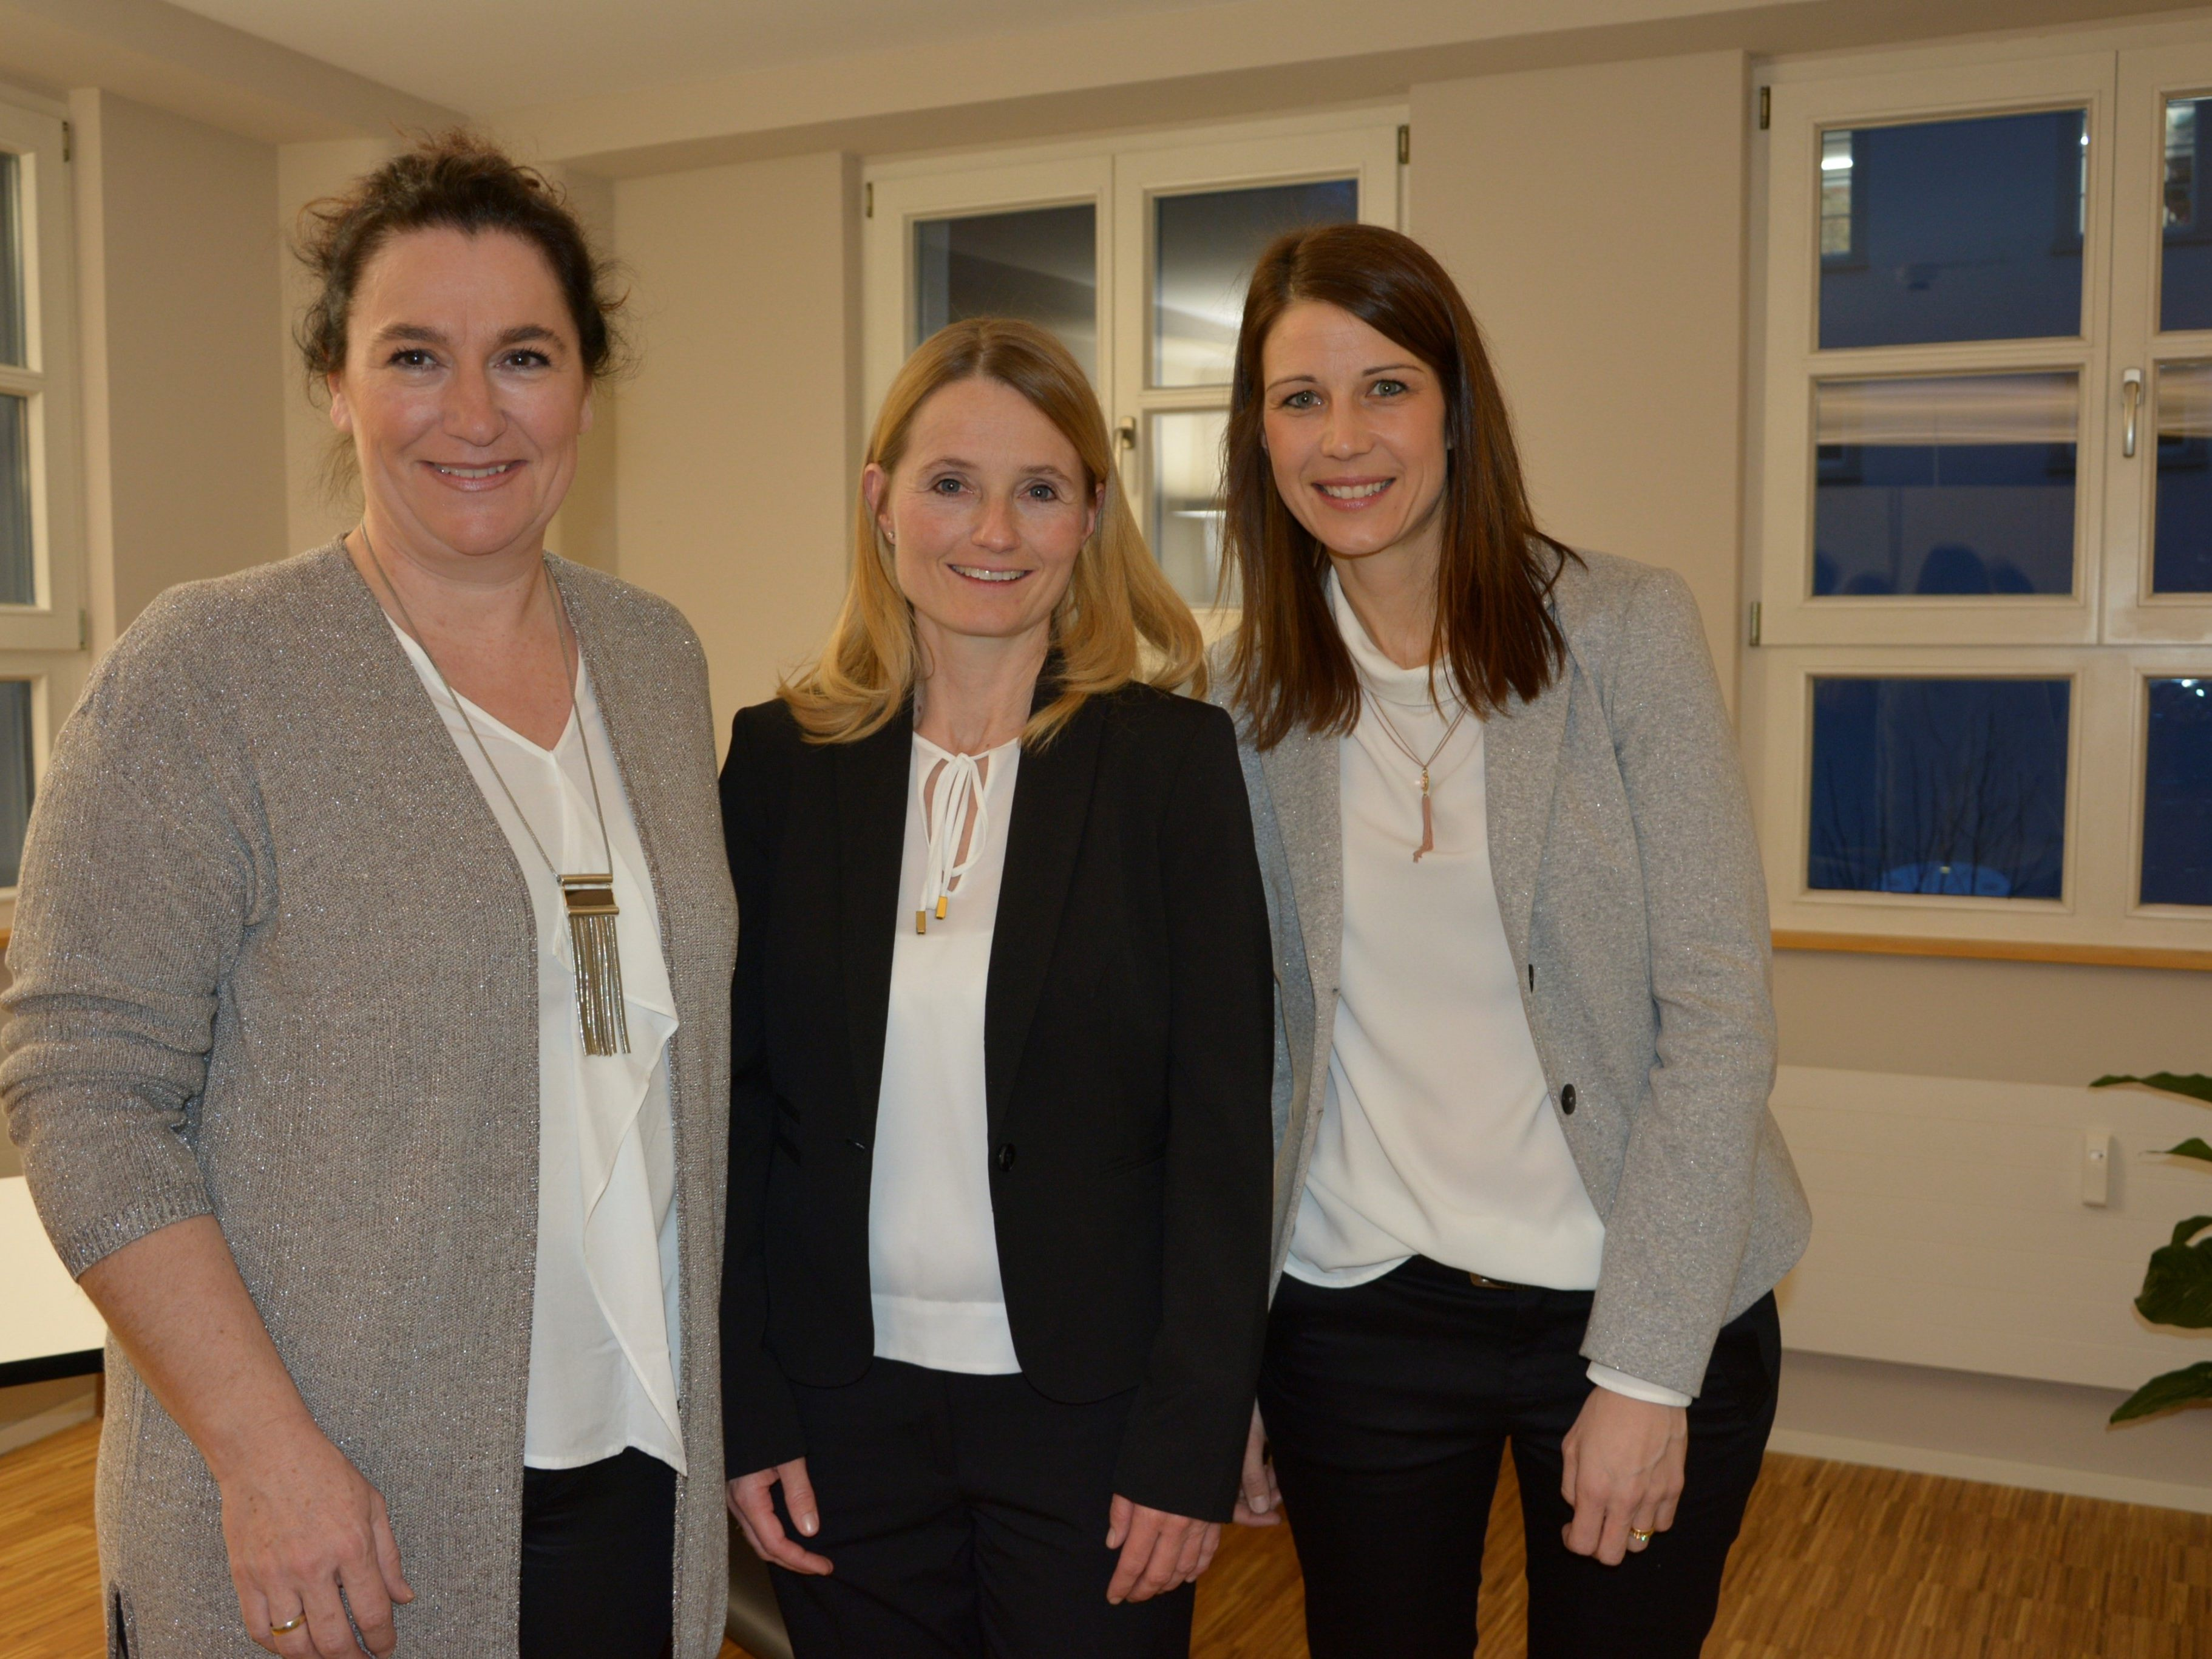 Dr. med. Anja Zangerl (Mitte), Physiotherapeutin Andrea Winder (re.) und Ordinationsassistentin Ingrid Barth (li.)